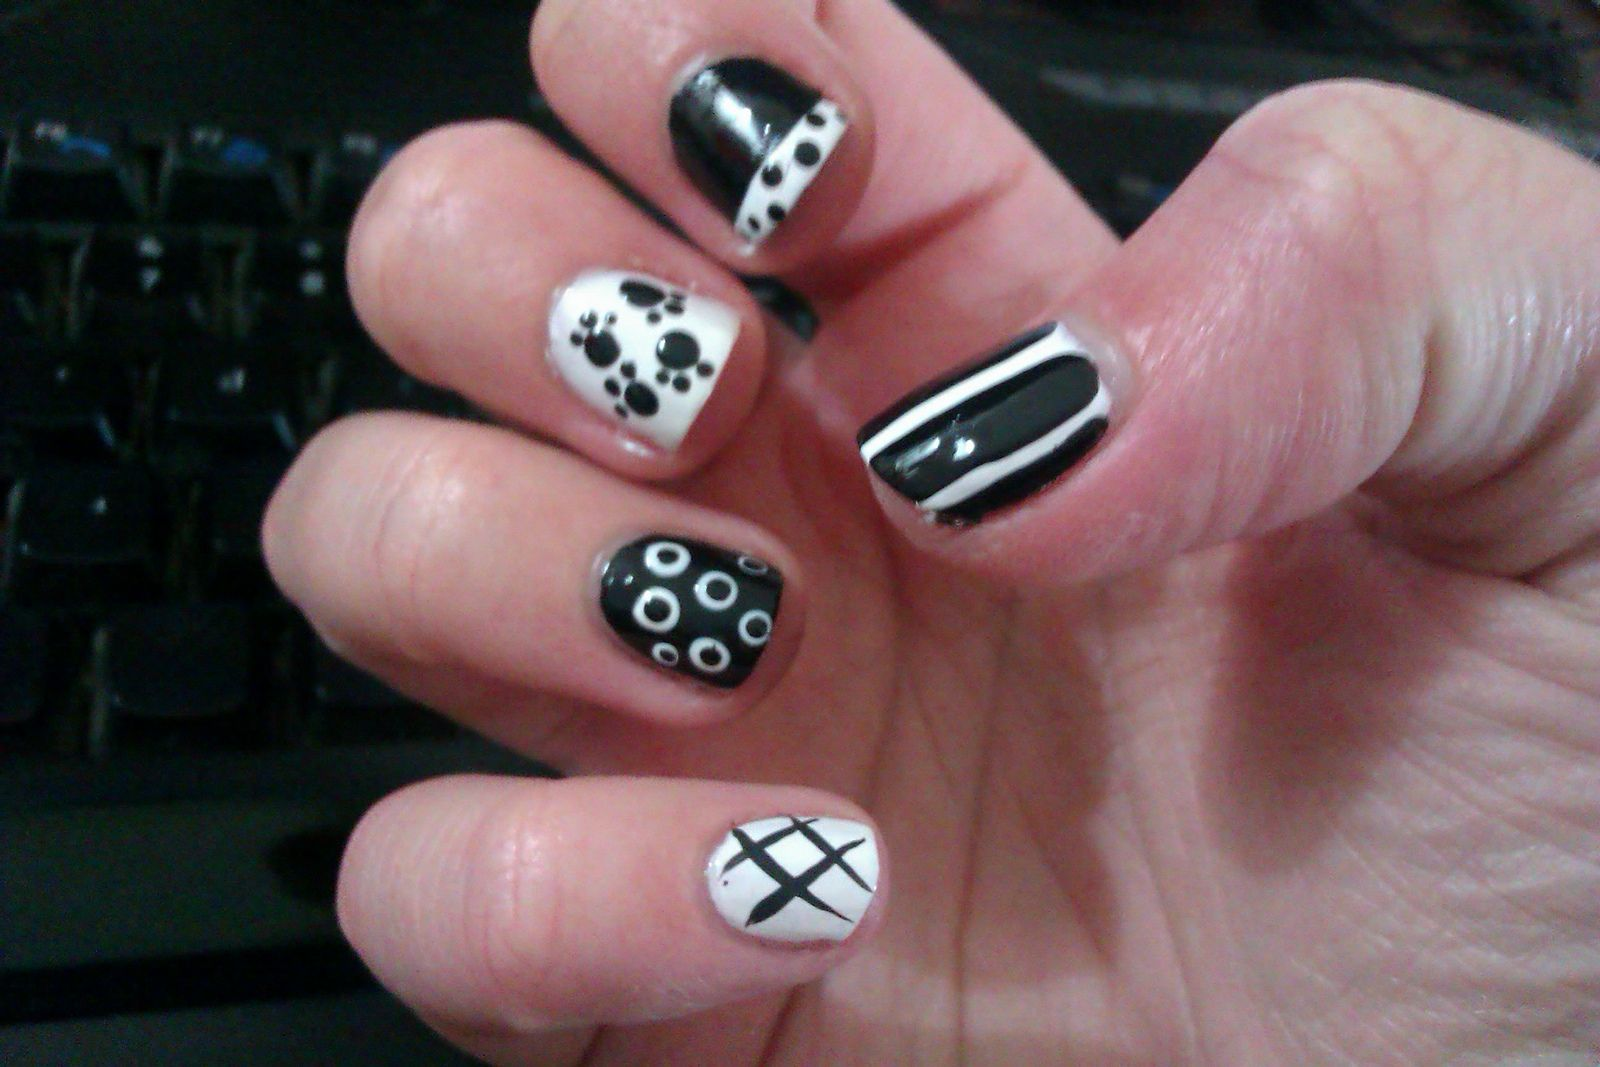 Cute nail designs easy do yourself step by step nail arts cute nail designs easy do yourself step by step nail arts solutioingenieria Choice Image